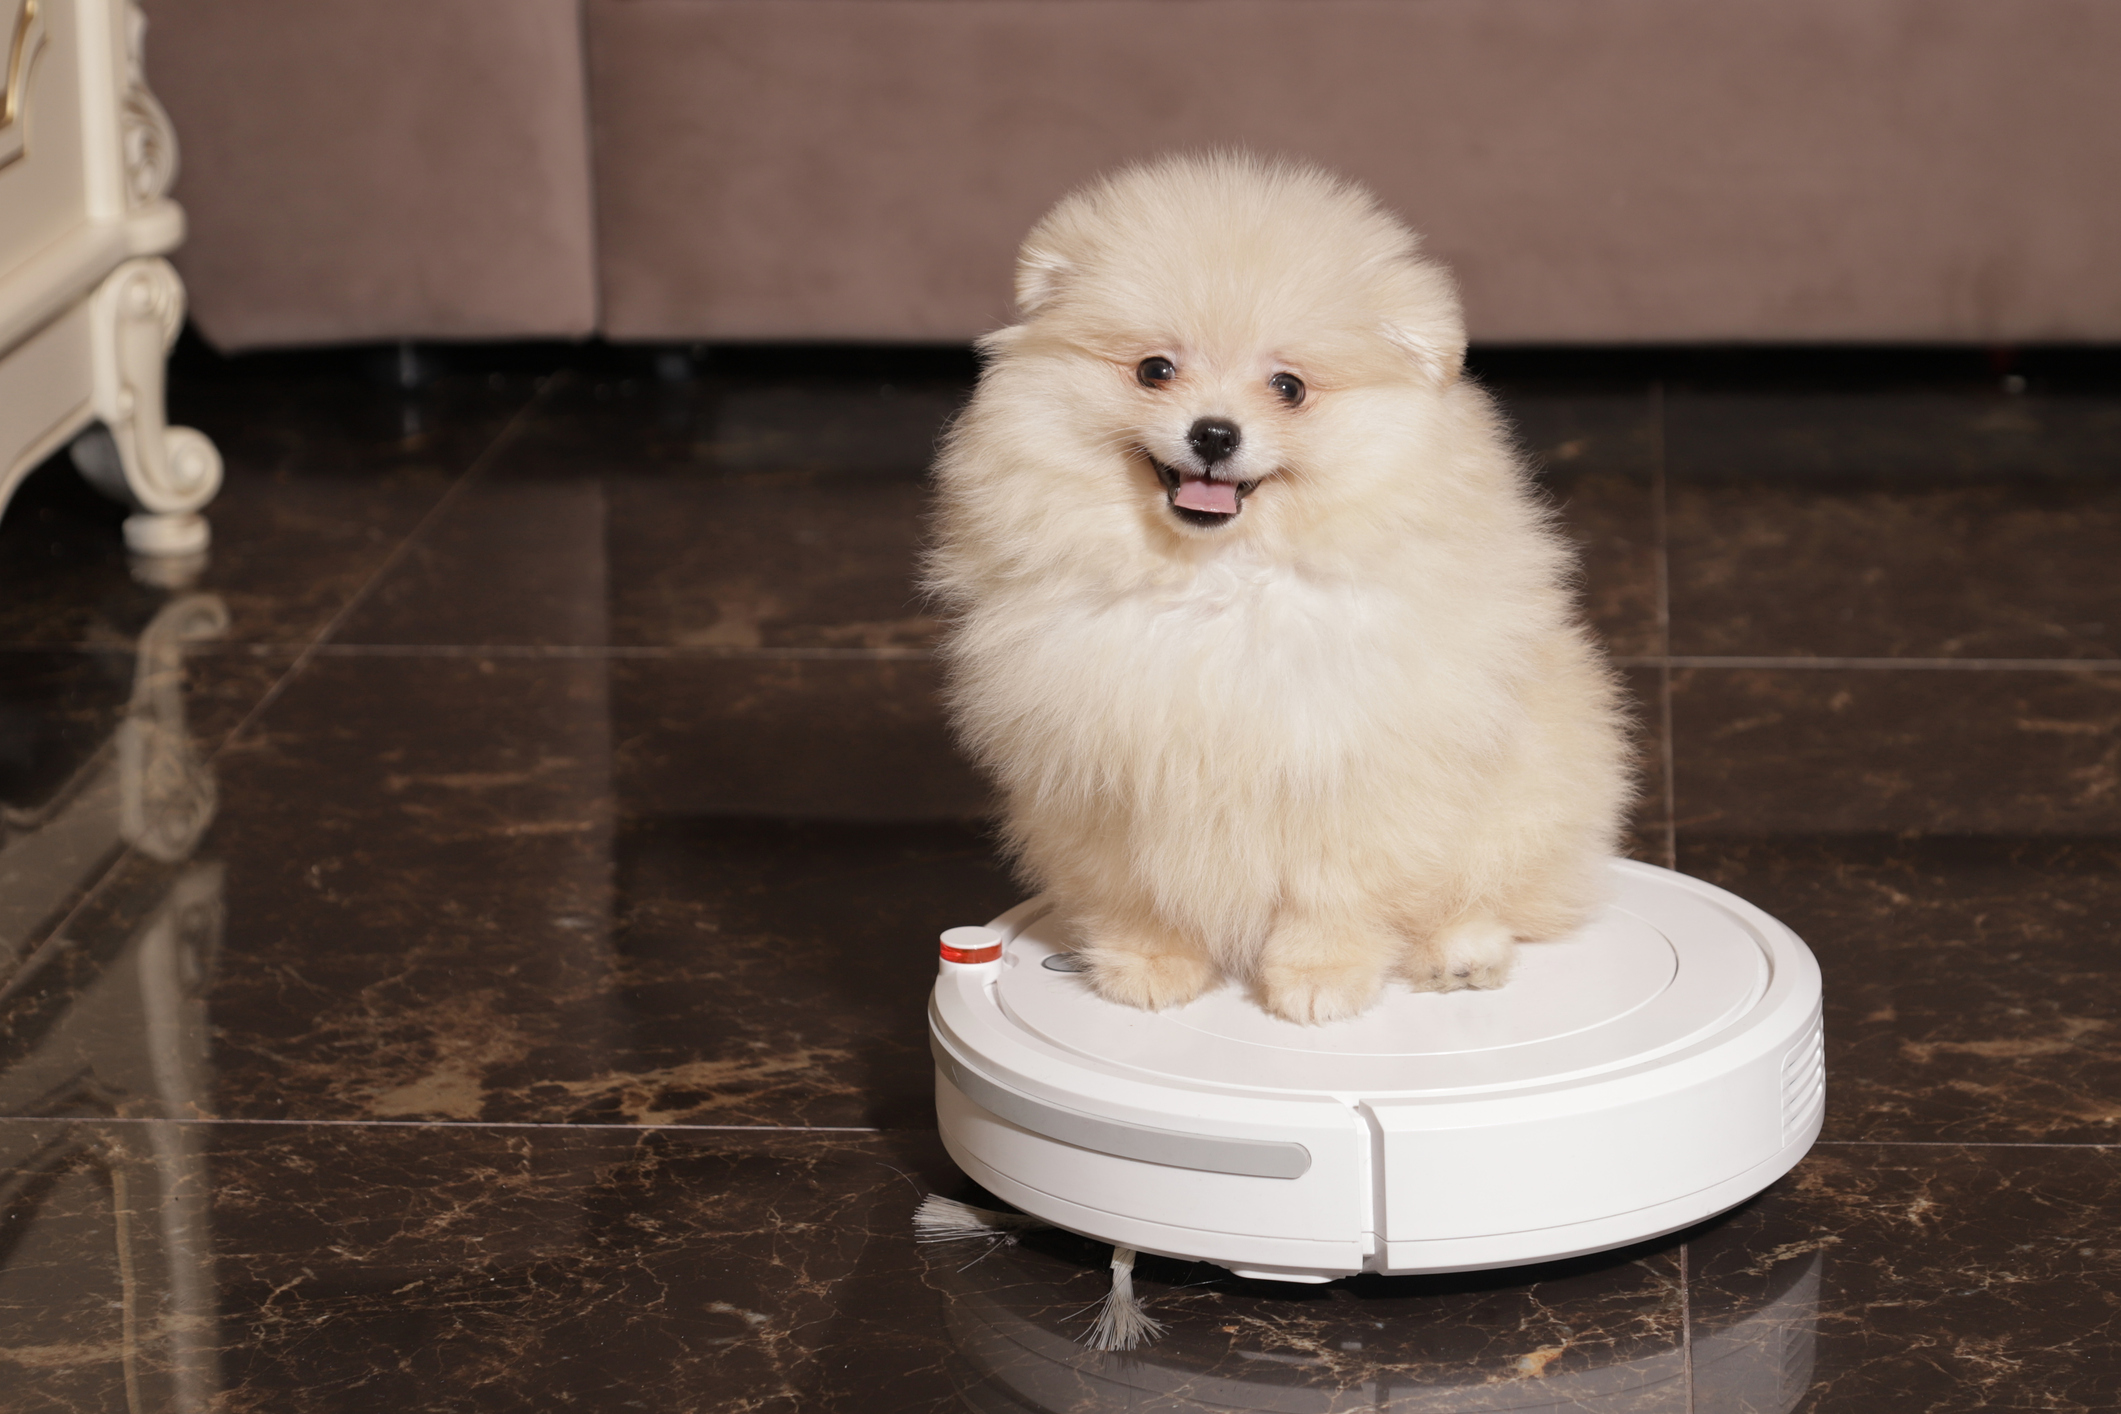 small dog sitting on a robot vacuum cleaner in a room (getty images)